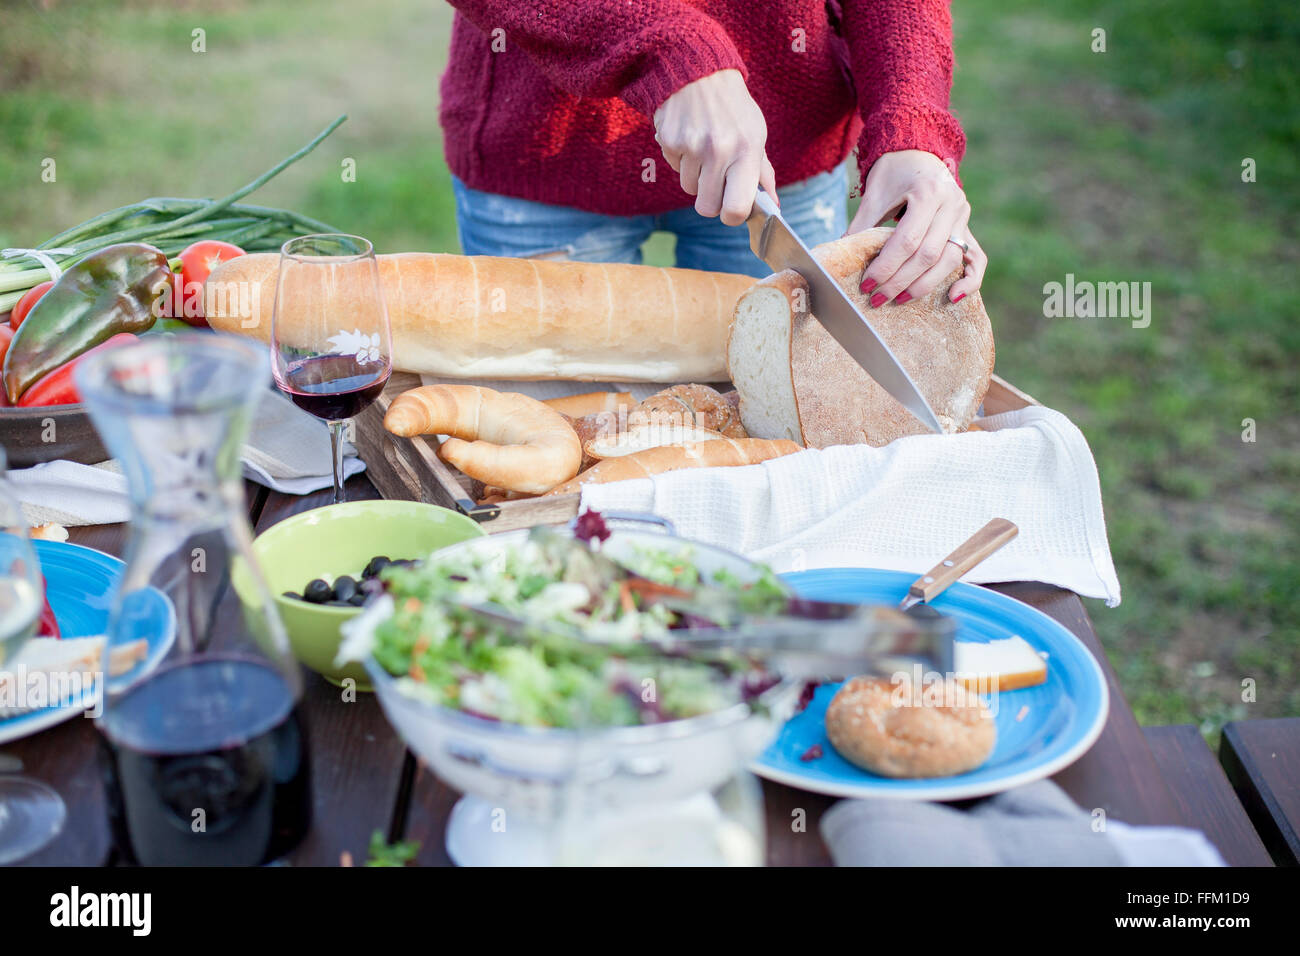 Person on garden party slicing loaf of bread - Stock Image